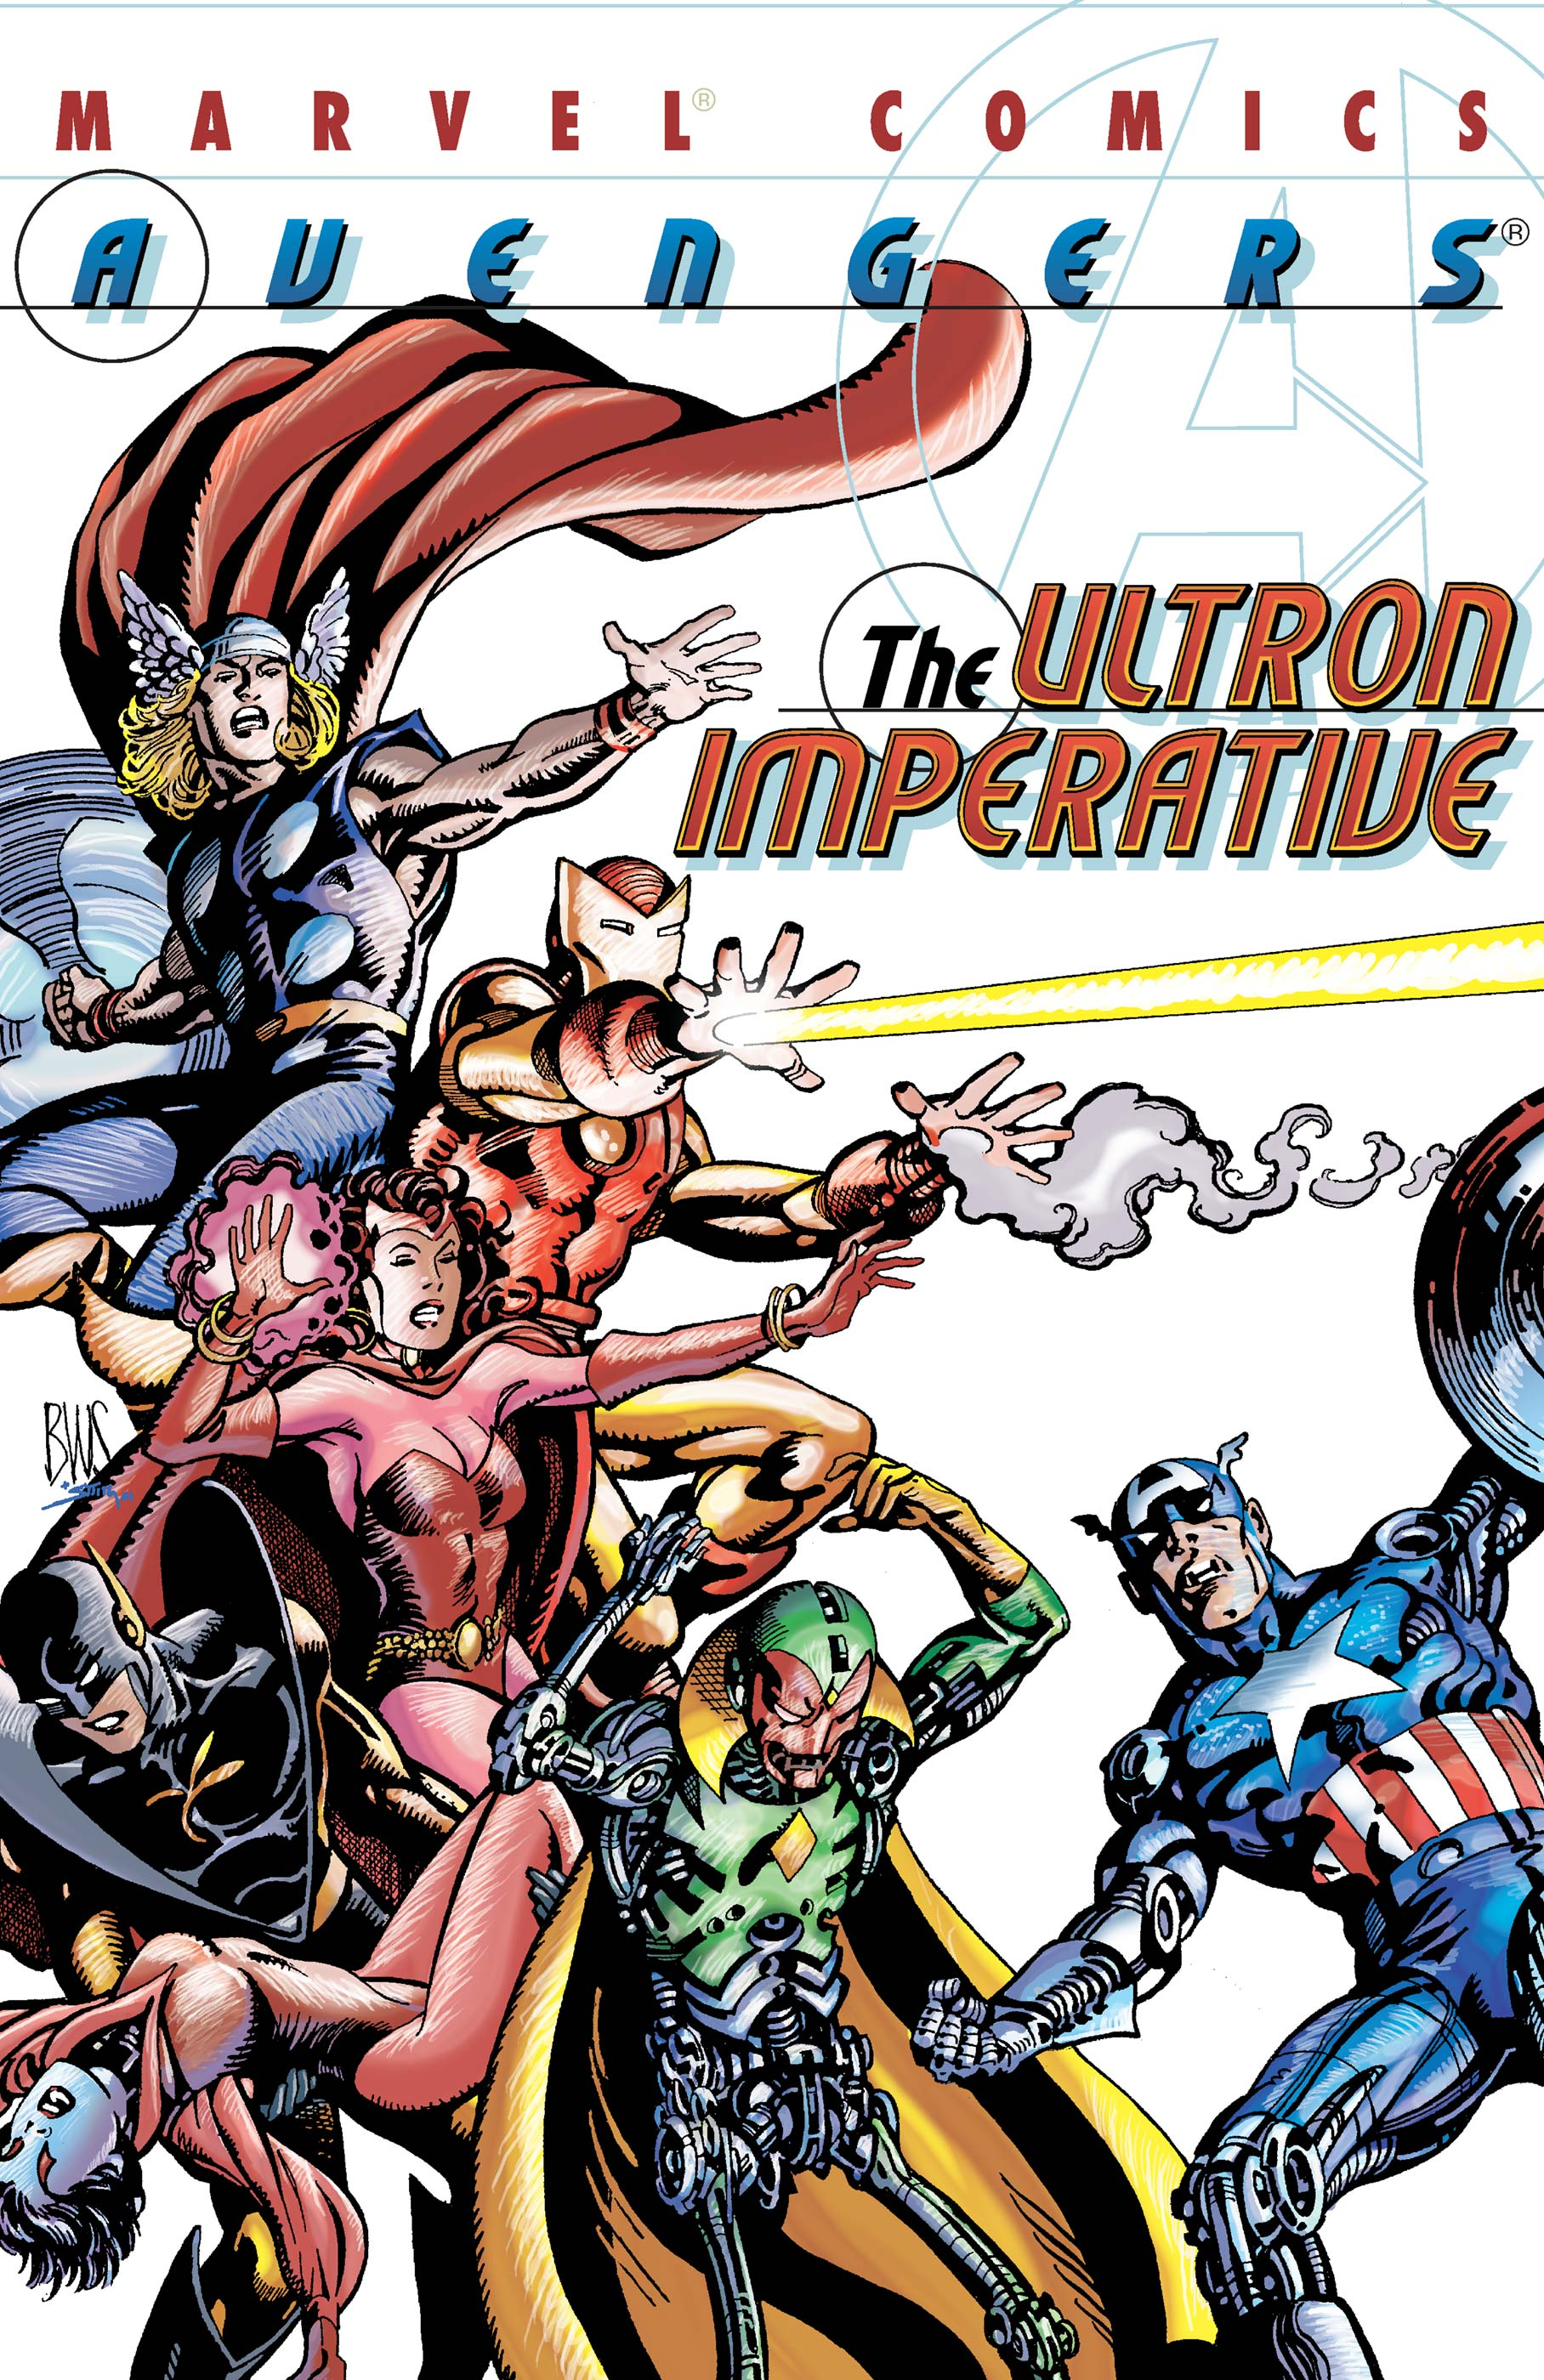 AVENGERS: THE ULTRON IMPERATIVE 1 (2001) #1